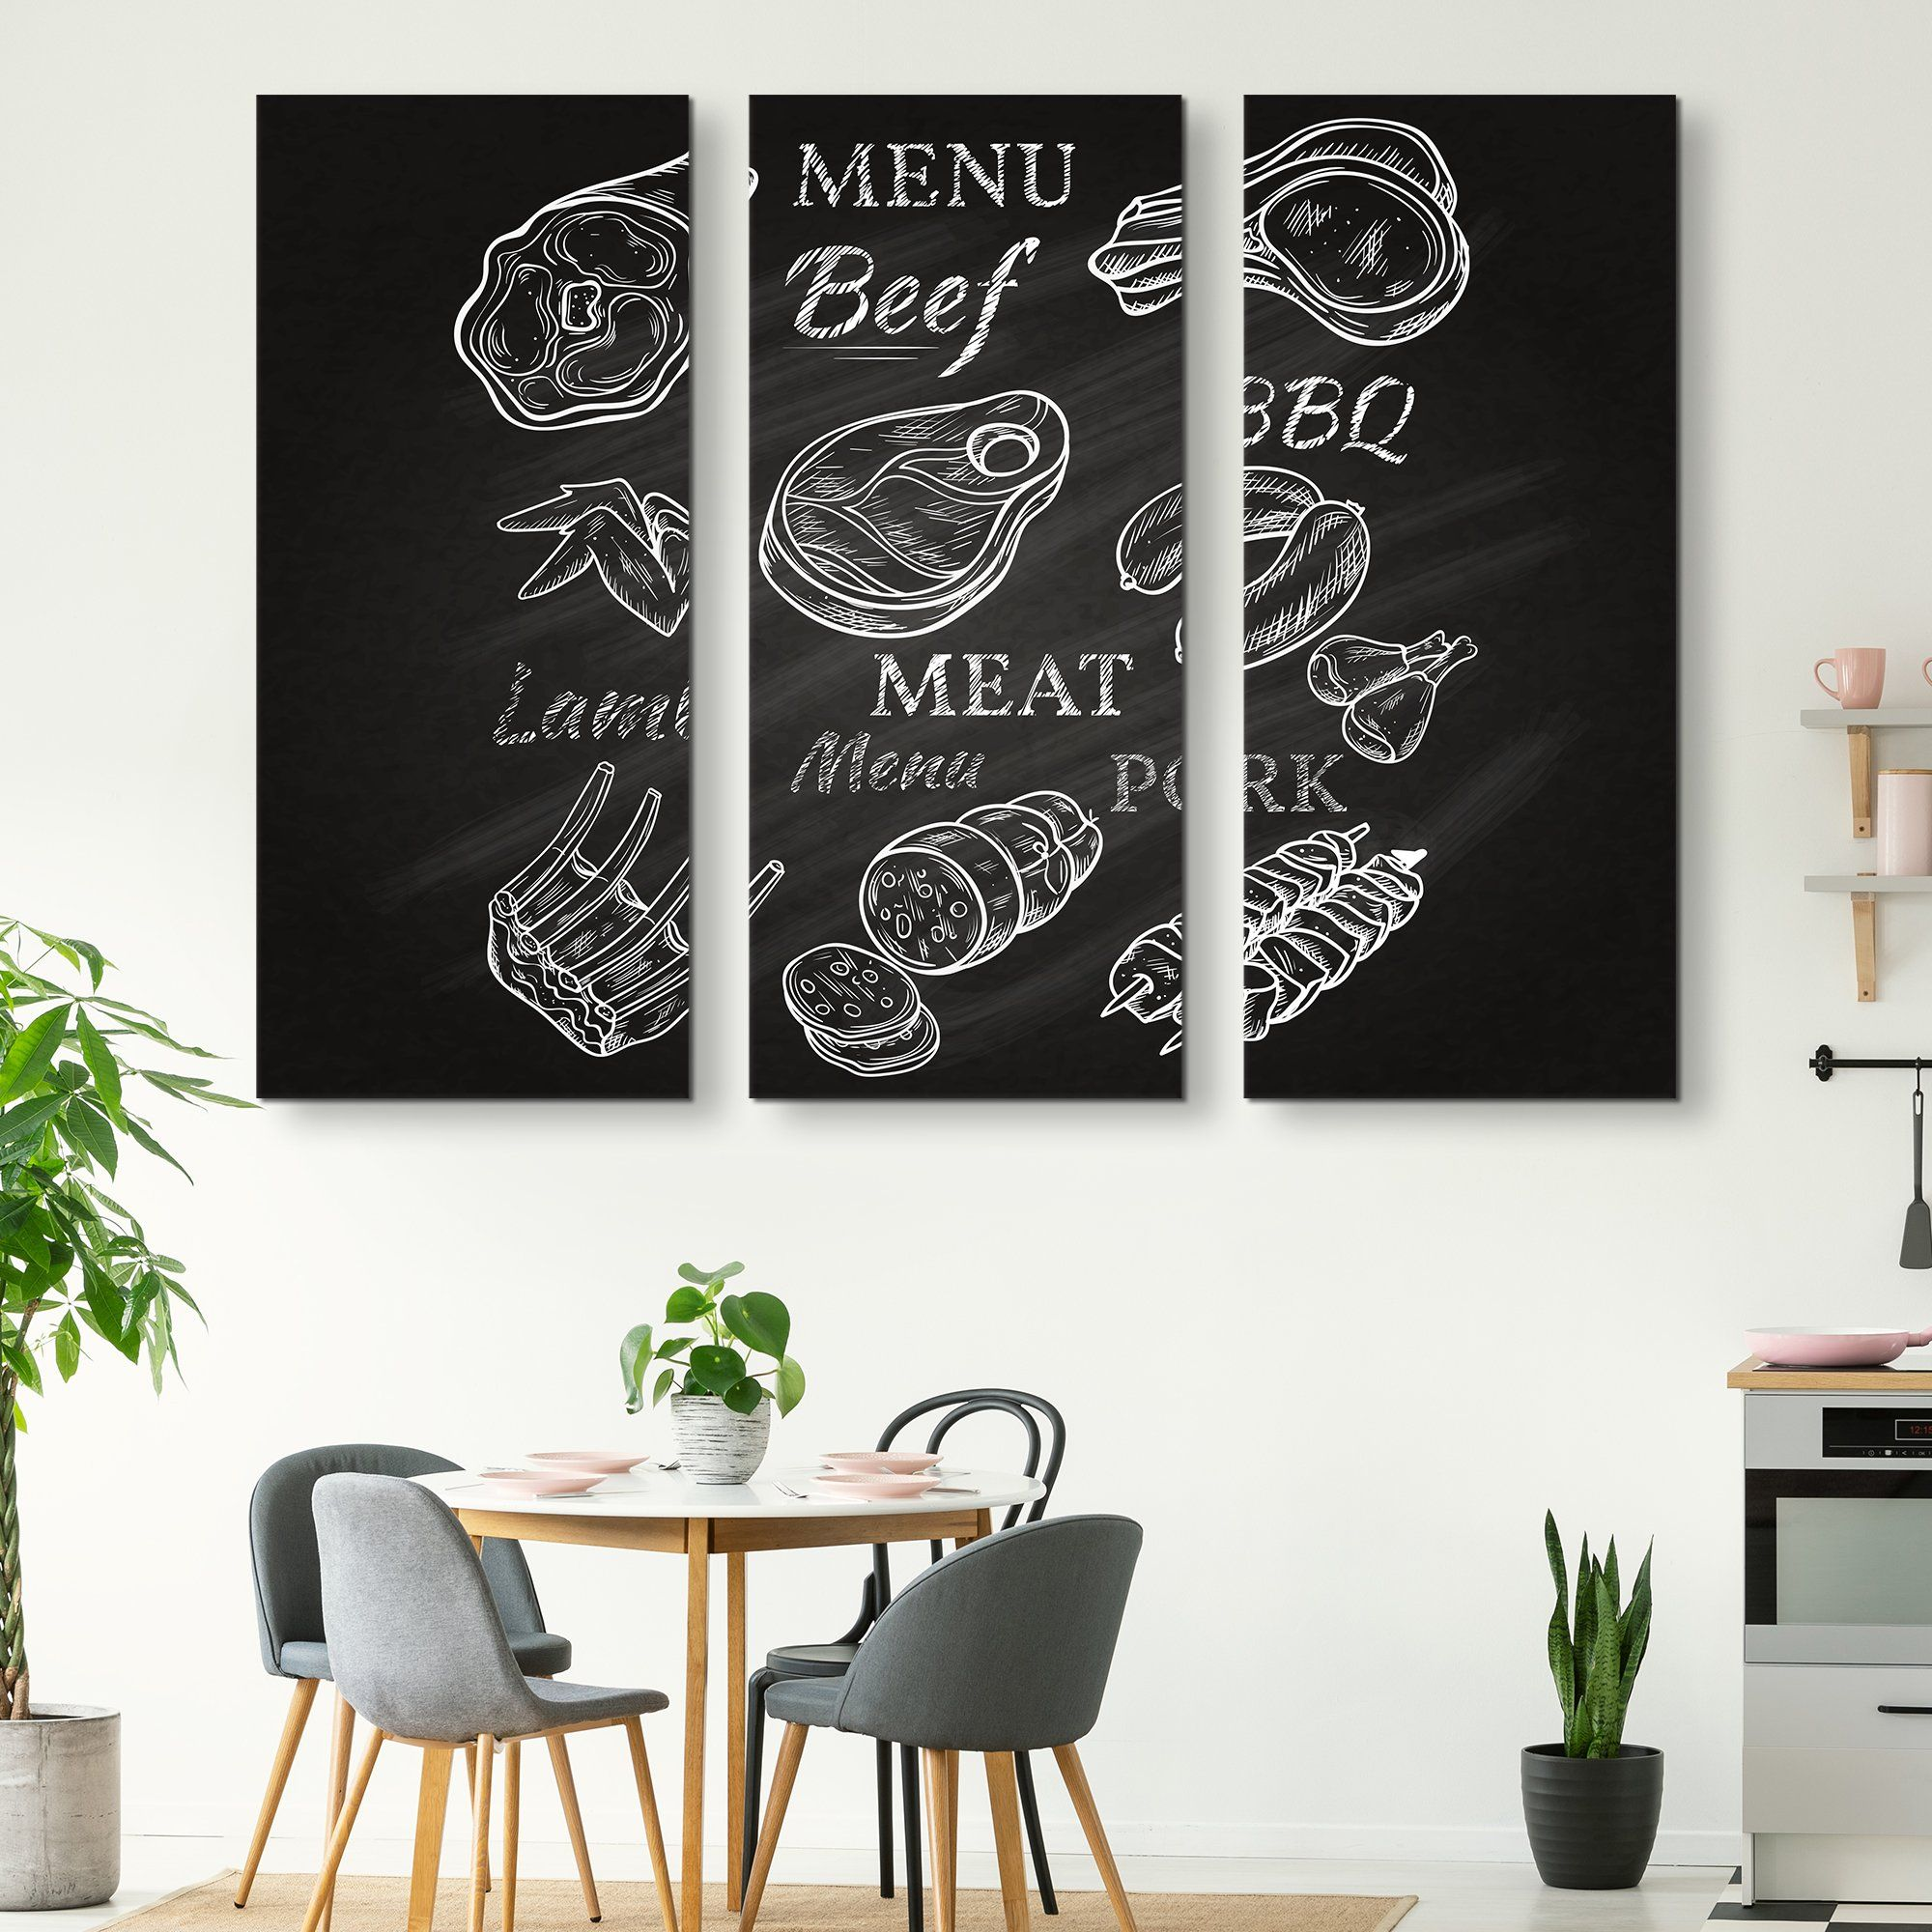 3 piece Menu wall art